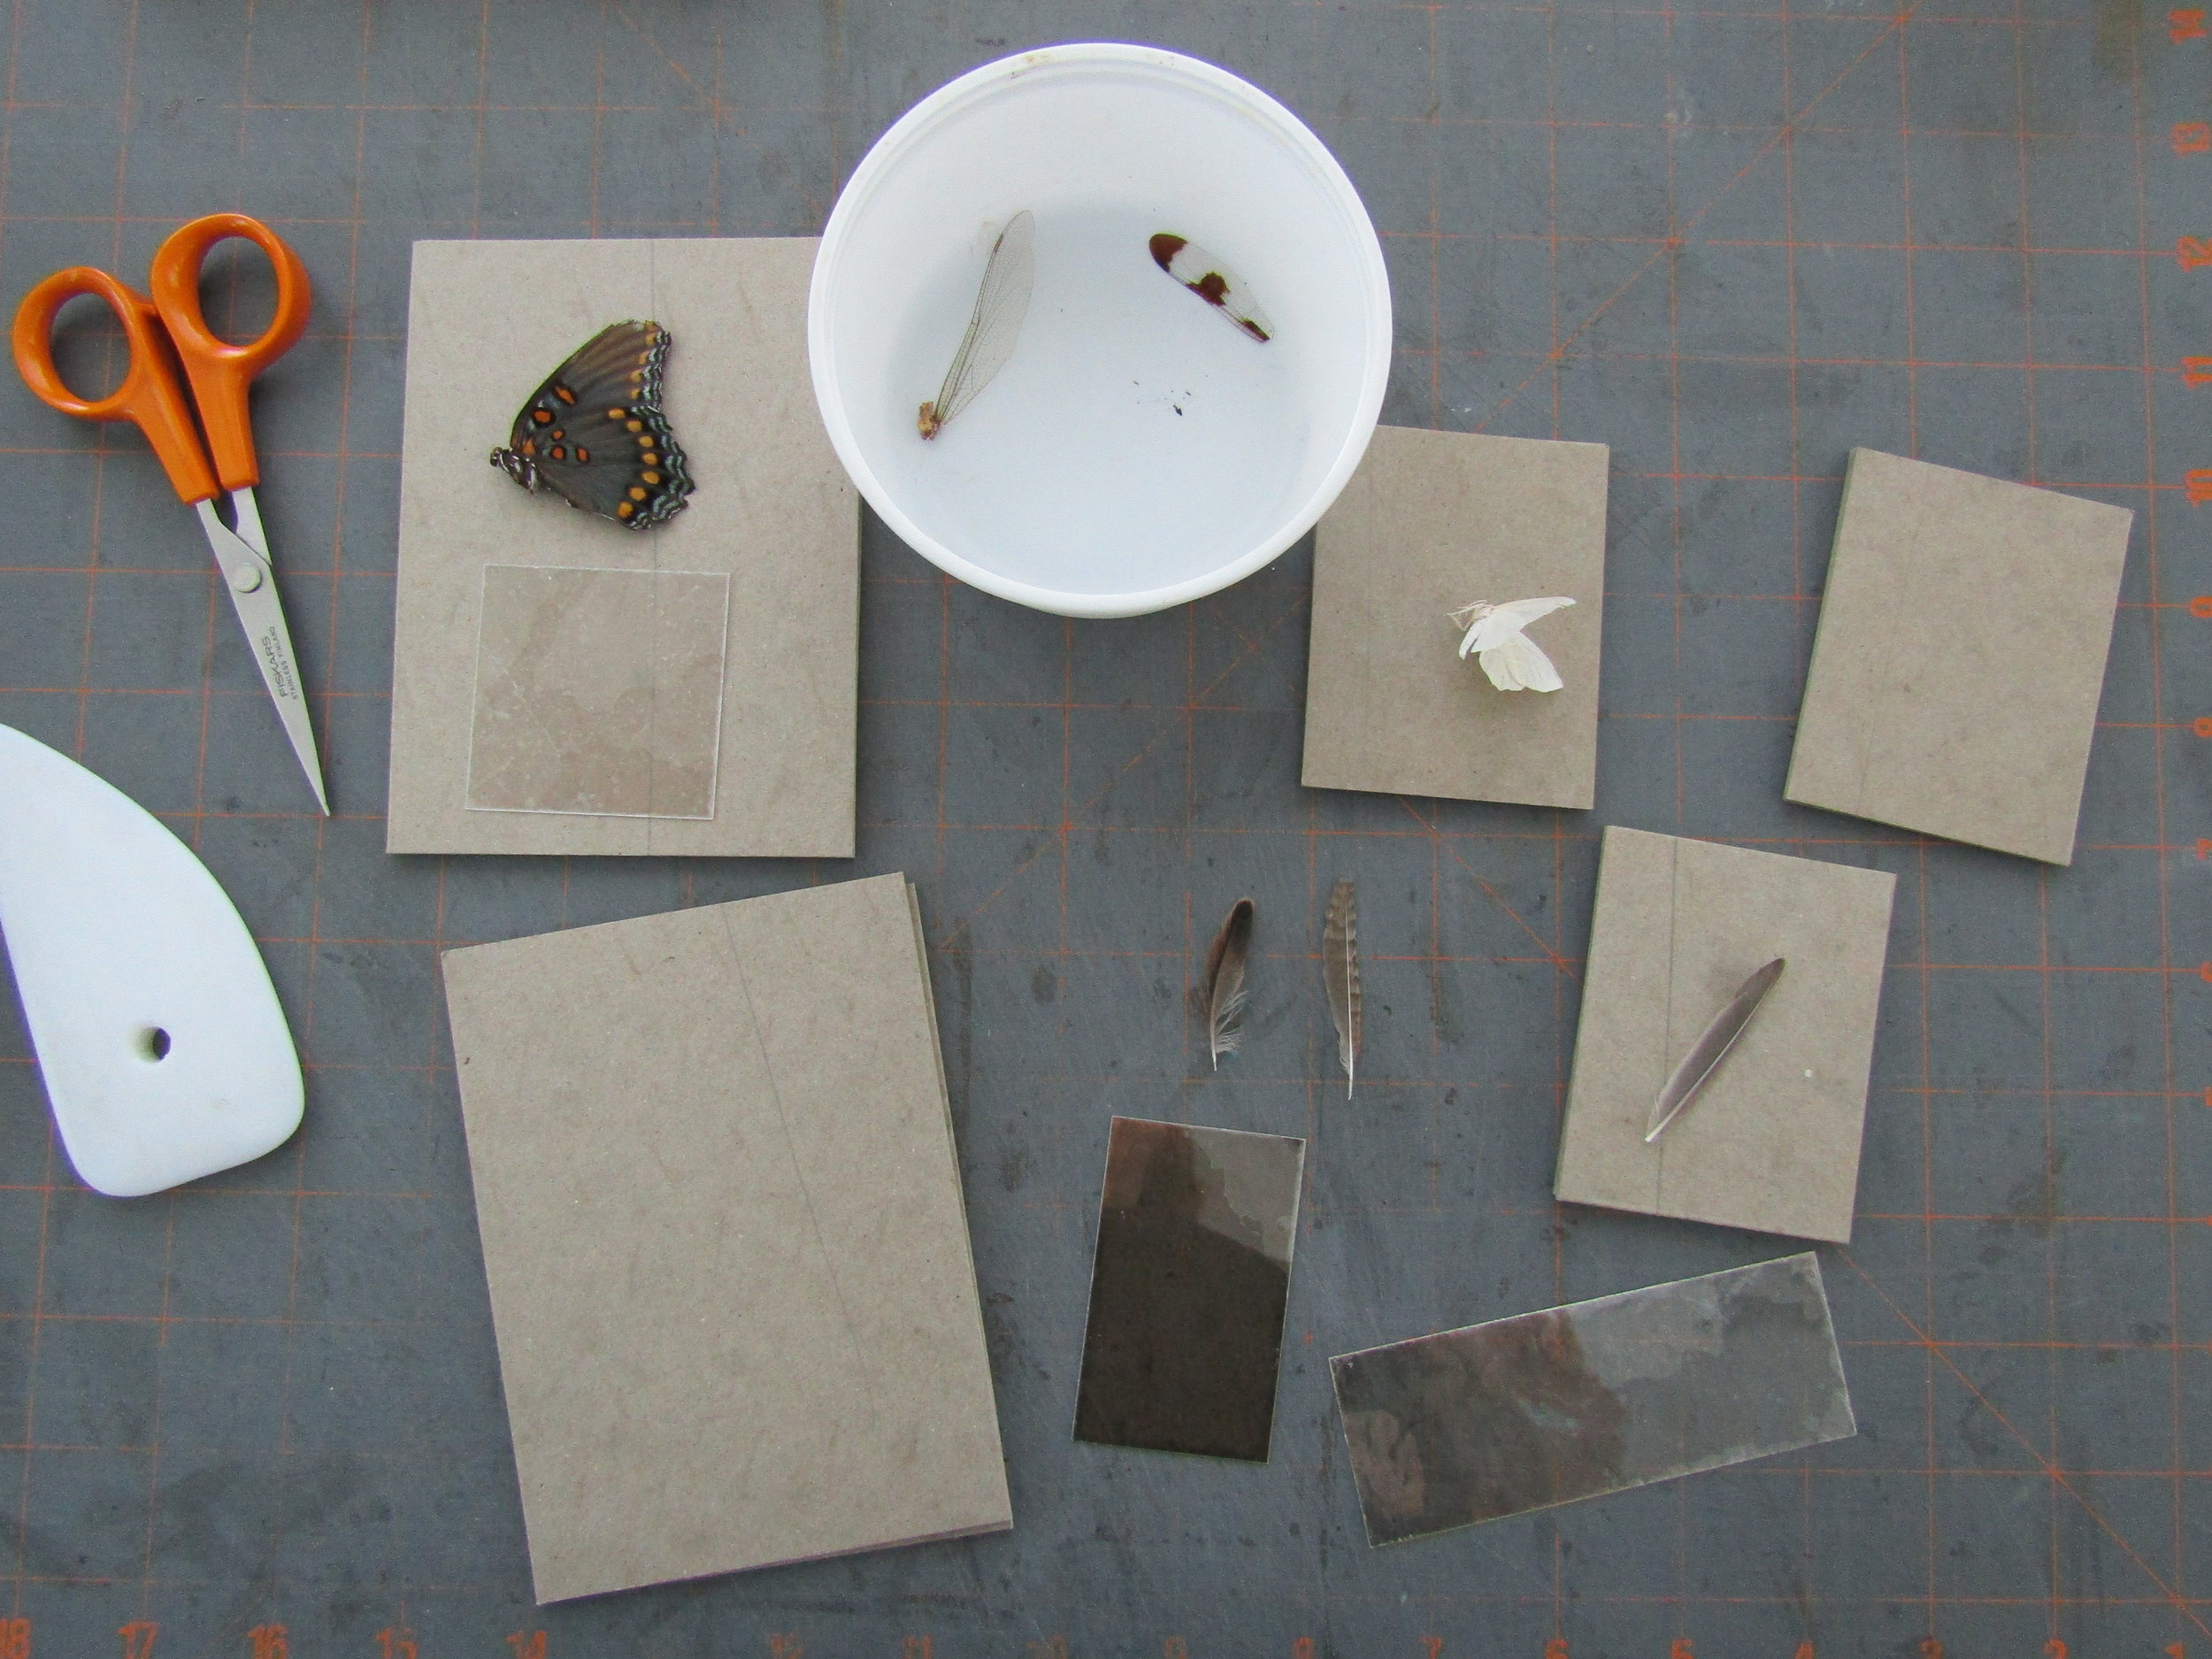 Selecting bits of ephemera to use with the books.